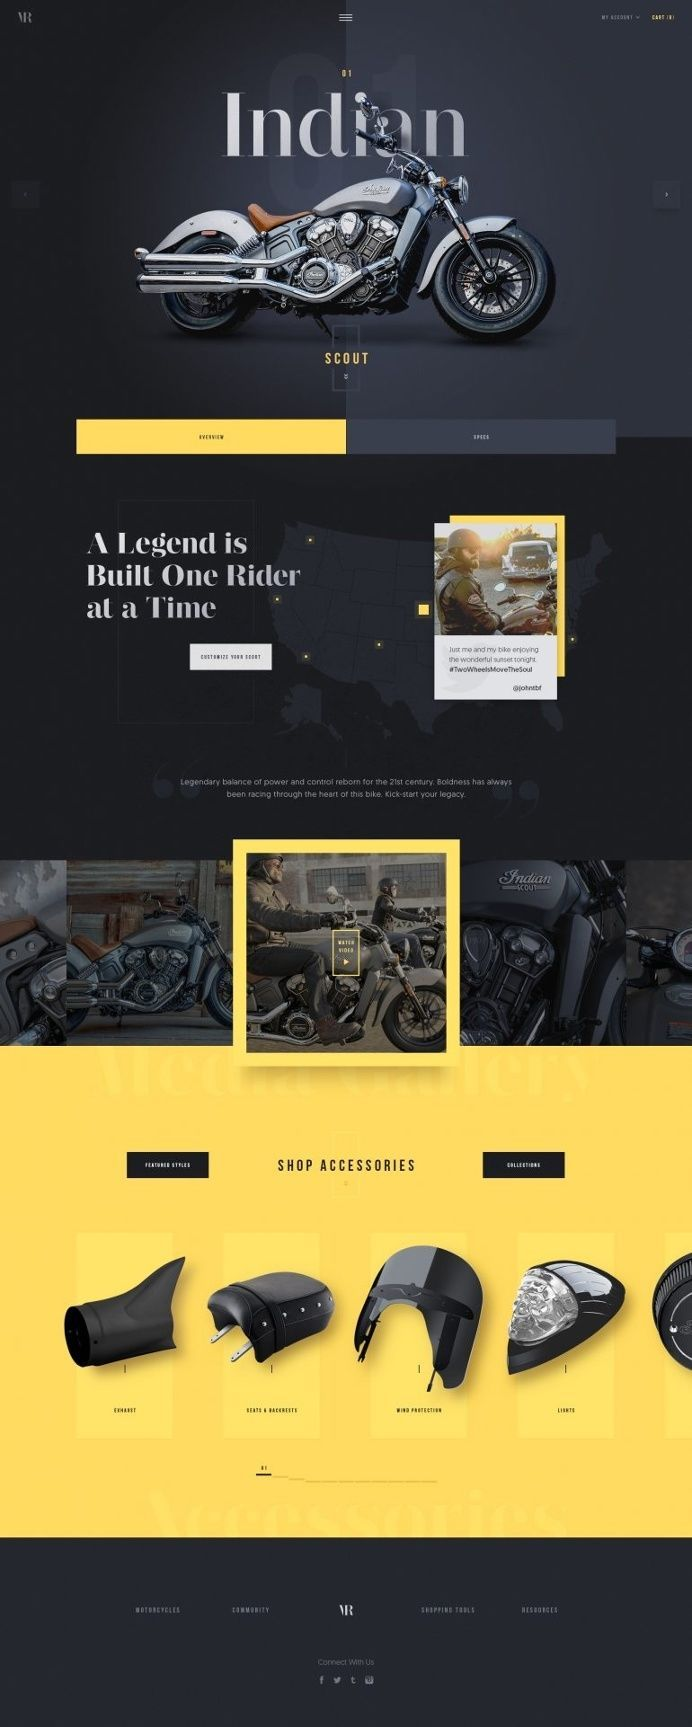 Vintage Rides Concept by Kreativa Studio in Web design. The UX Blog podcast is also available on iTunes.